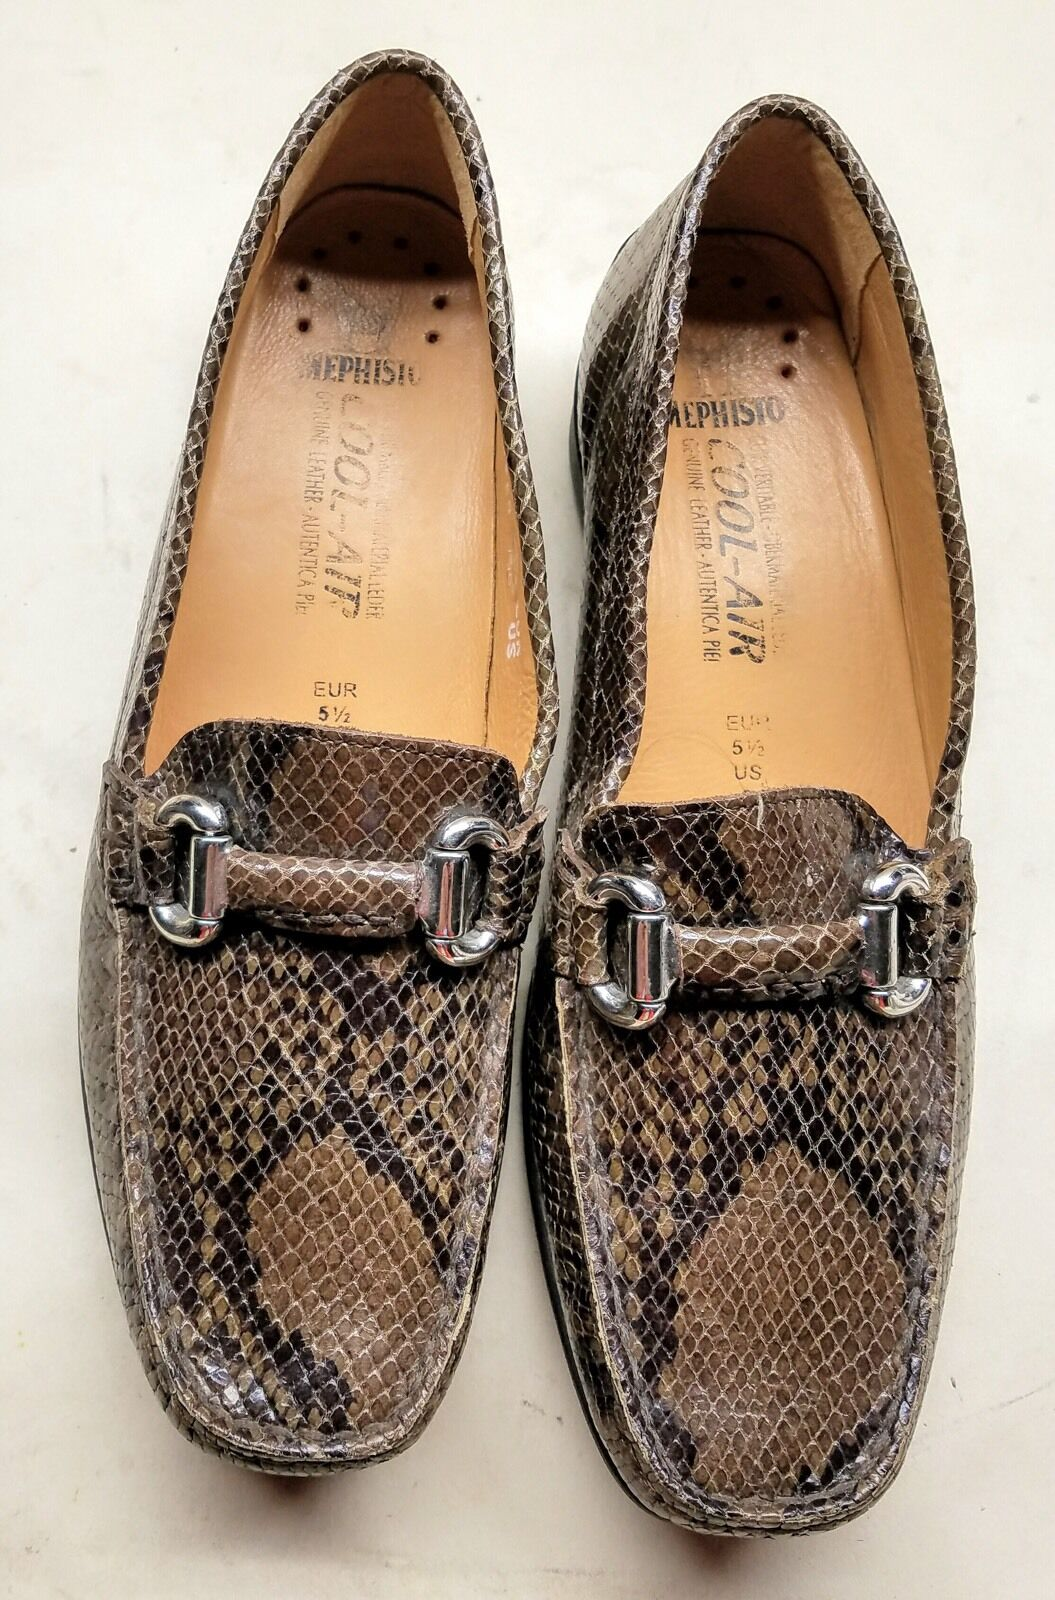 Mephisto  NATALA Beige Leather With Snake Print